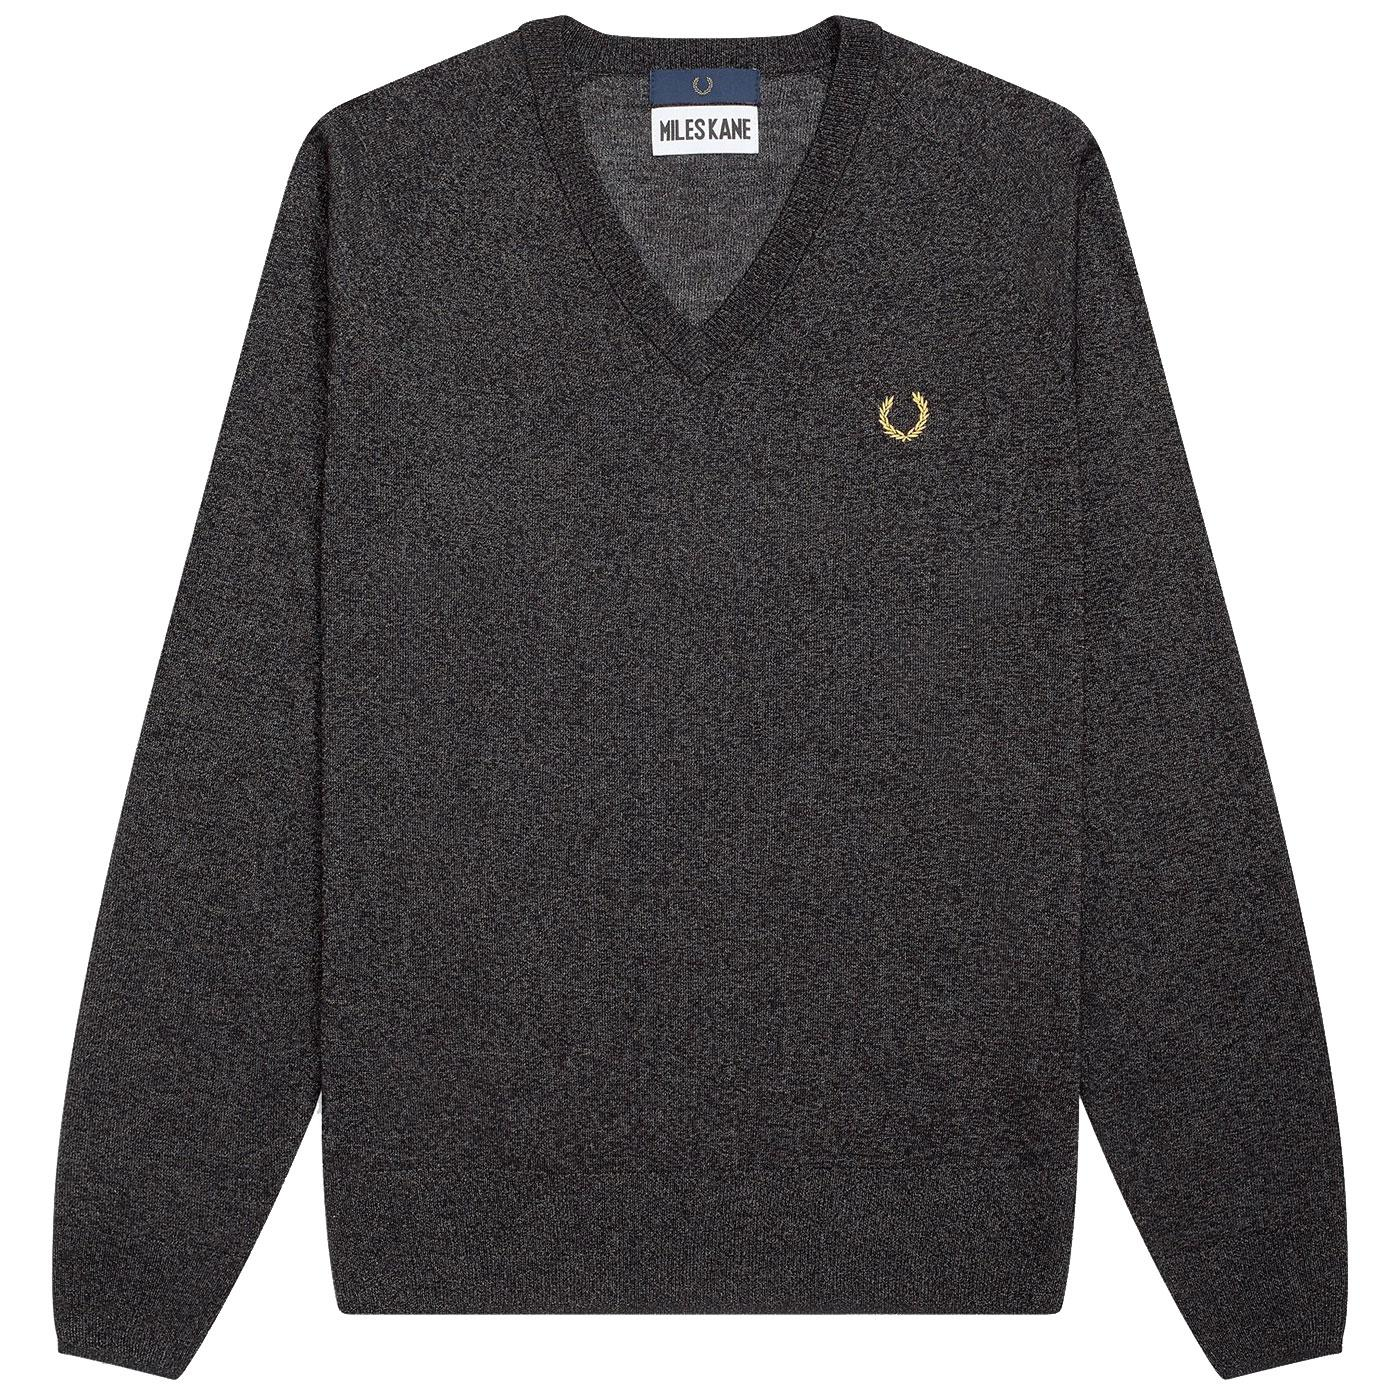 FRED PERRY X MILES KANE Mod Metallic V-Neck Jumper